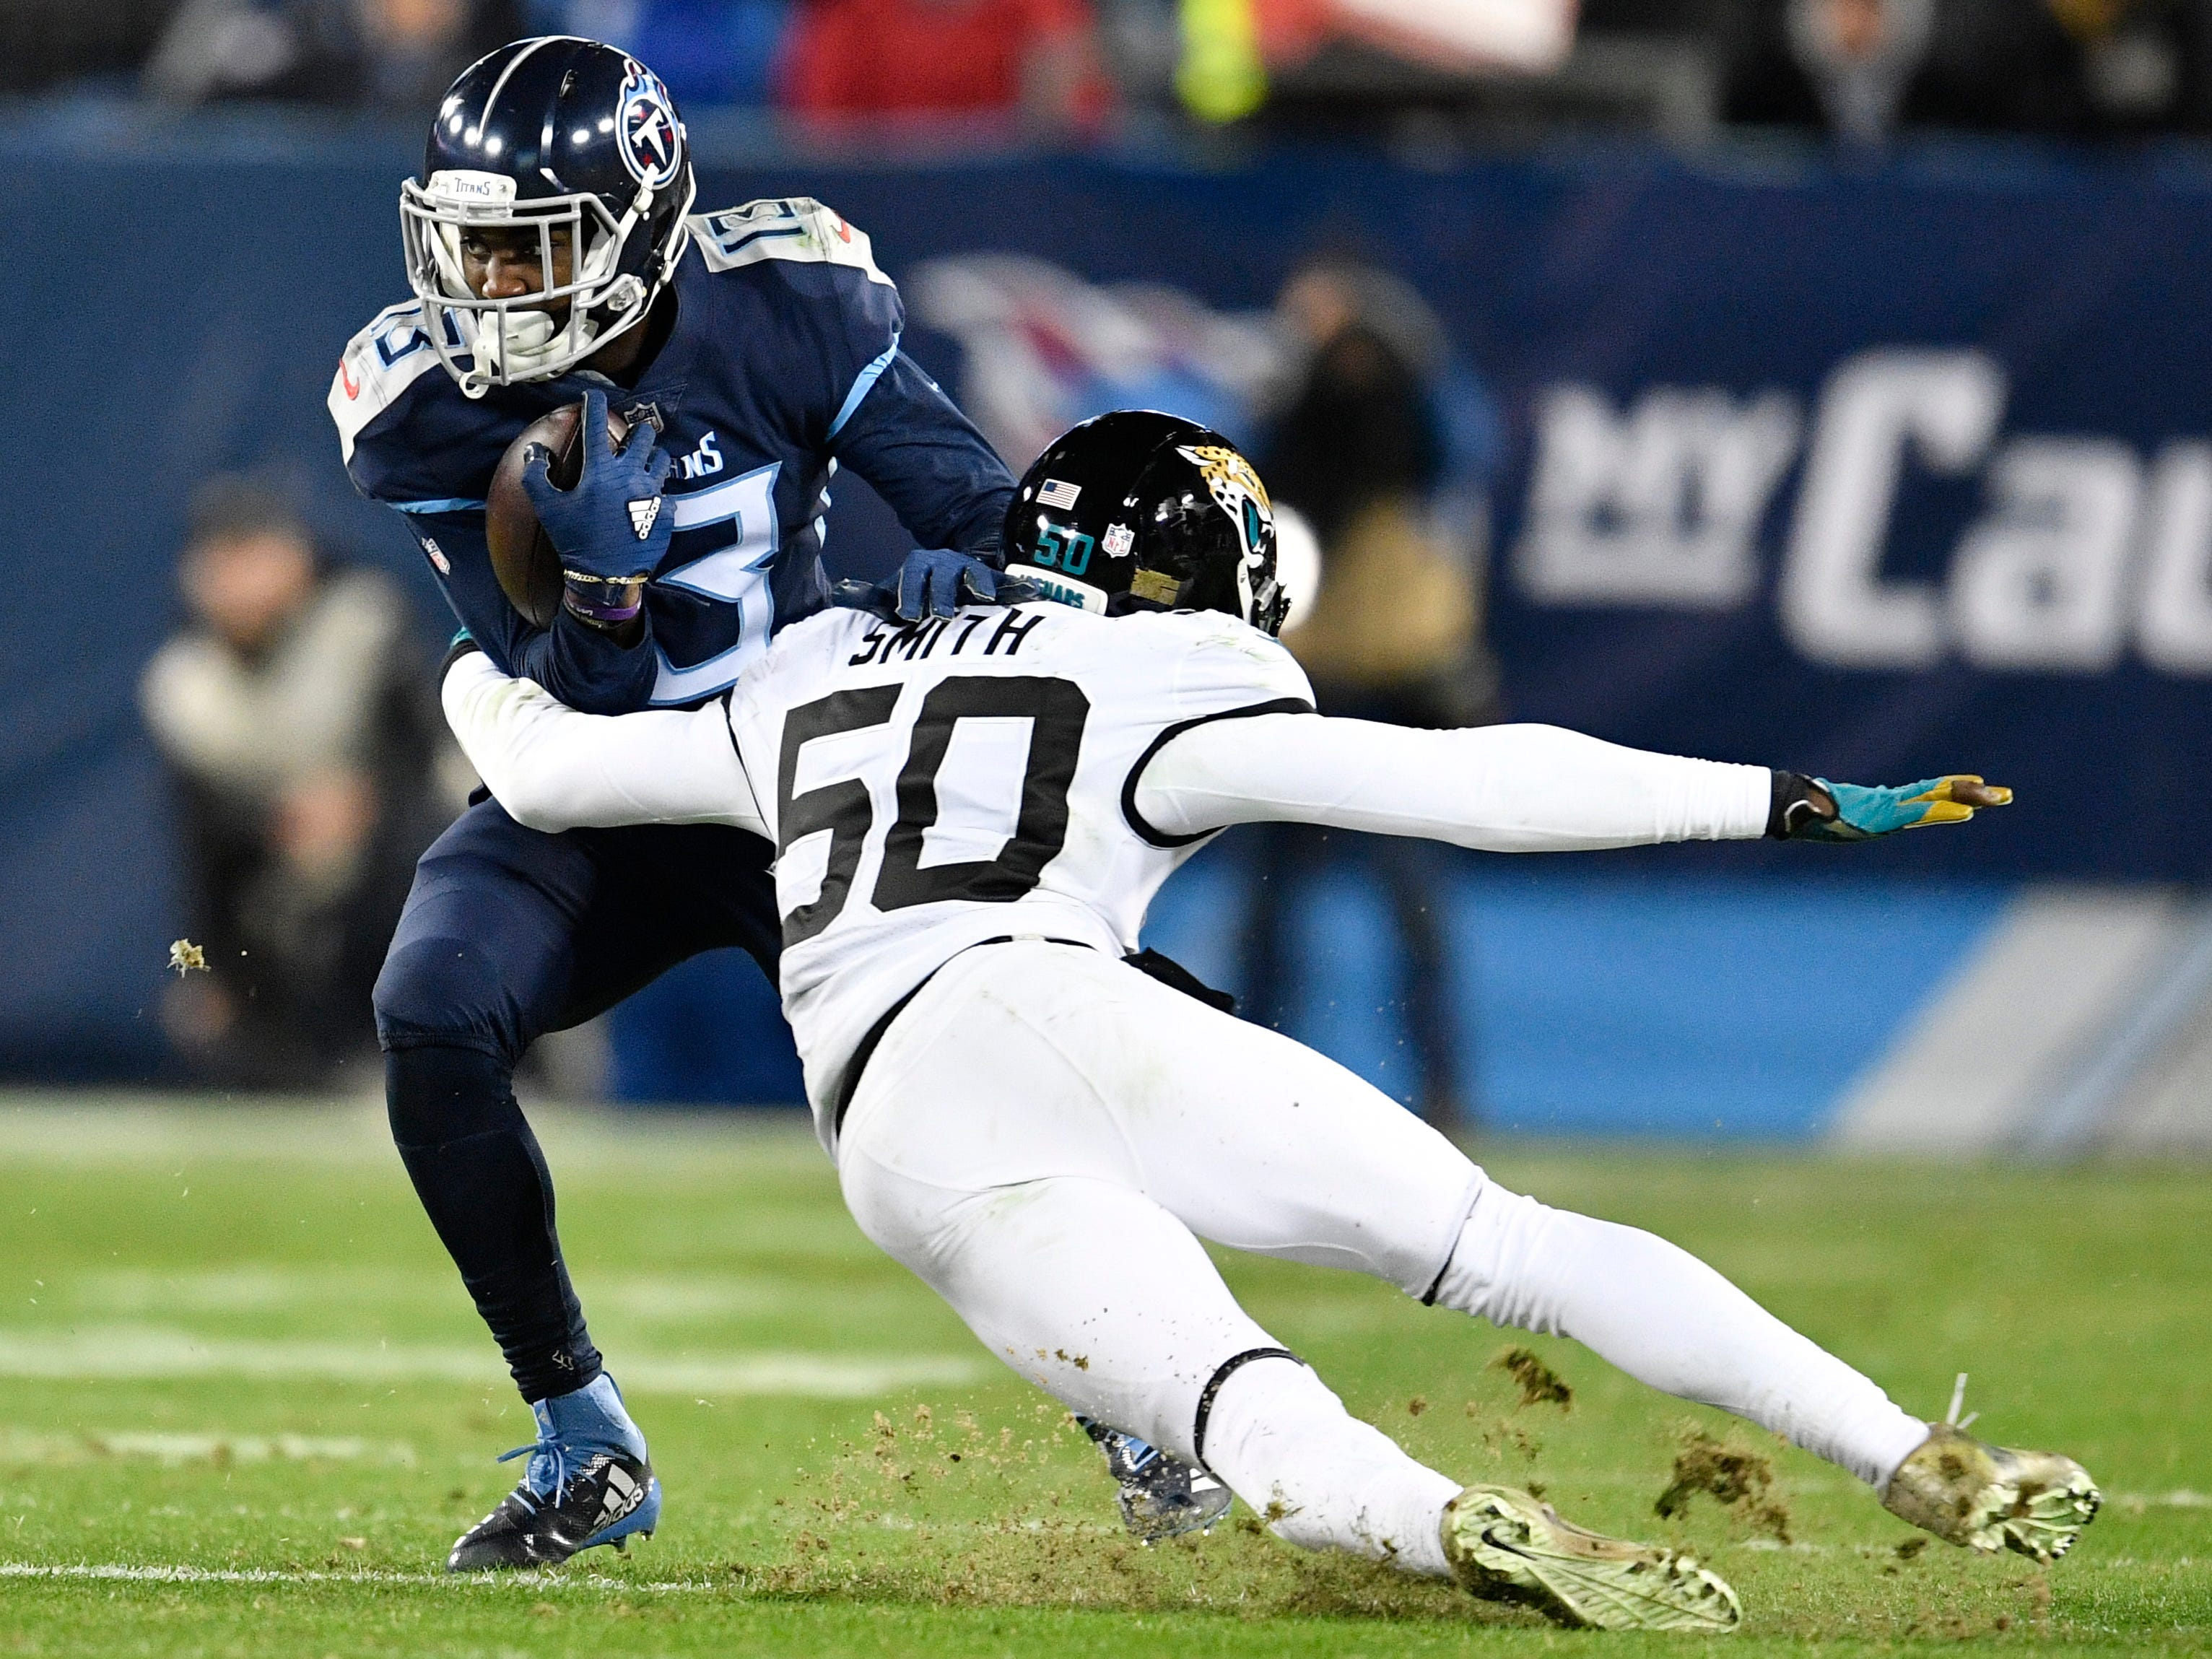 Titans wide receiver Taywan Taylor (13) escapes from Jaguars linebacker Telvin Smith (50) in the second quarter at Nissan Stadium Thursday, Dec. 6, 2018, in Nashville, Tenn.